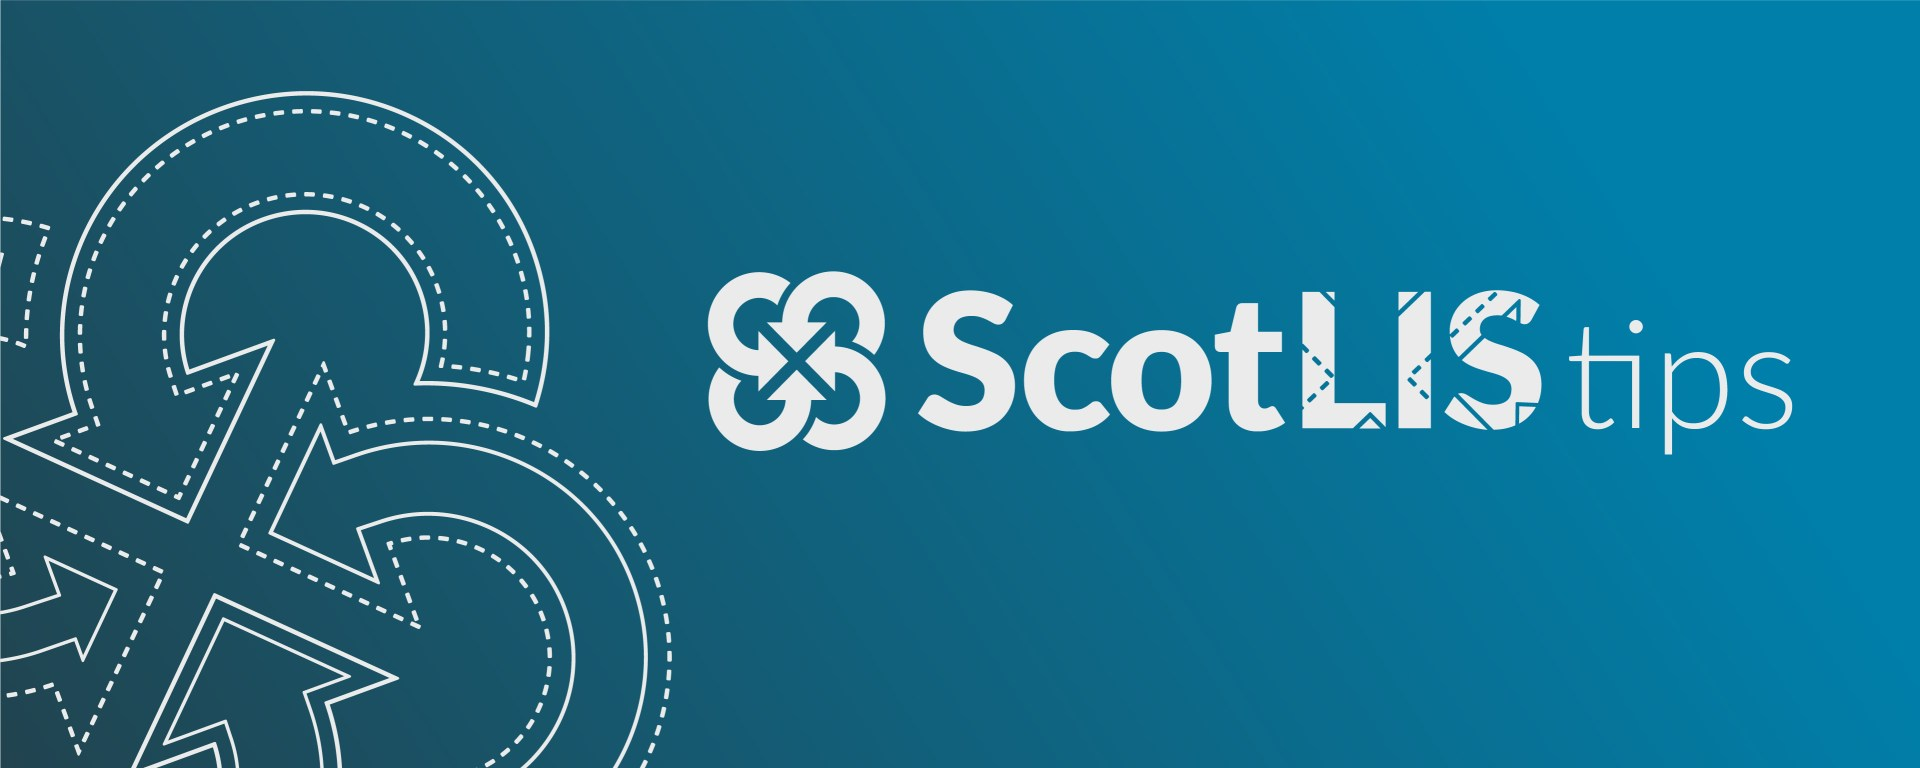 generic scotlis graphic banner